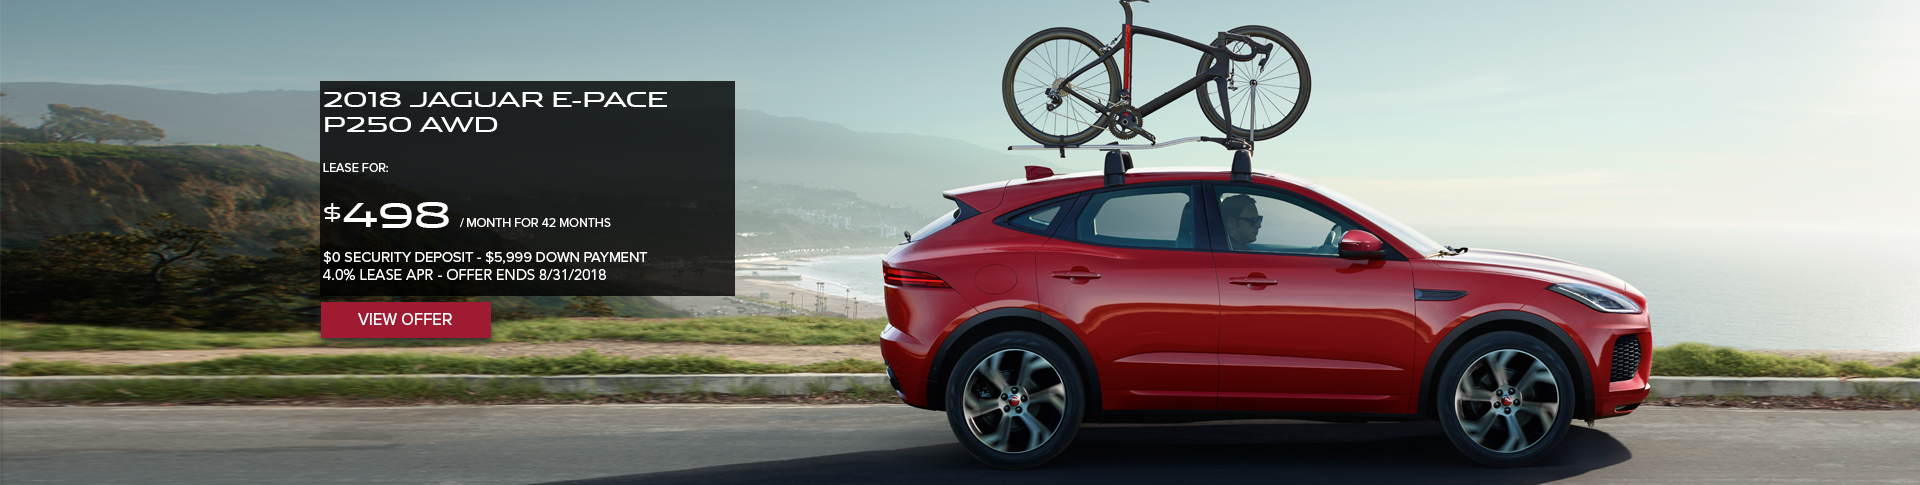 August 2018 E-PACE Offer